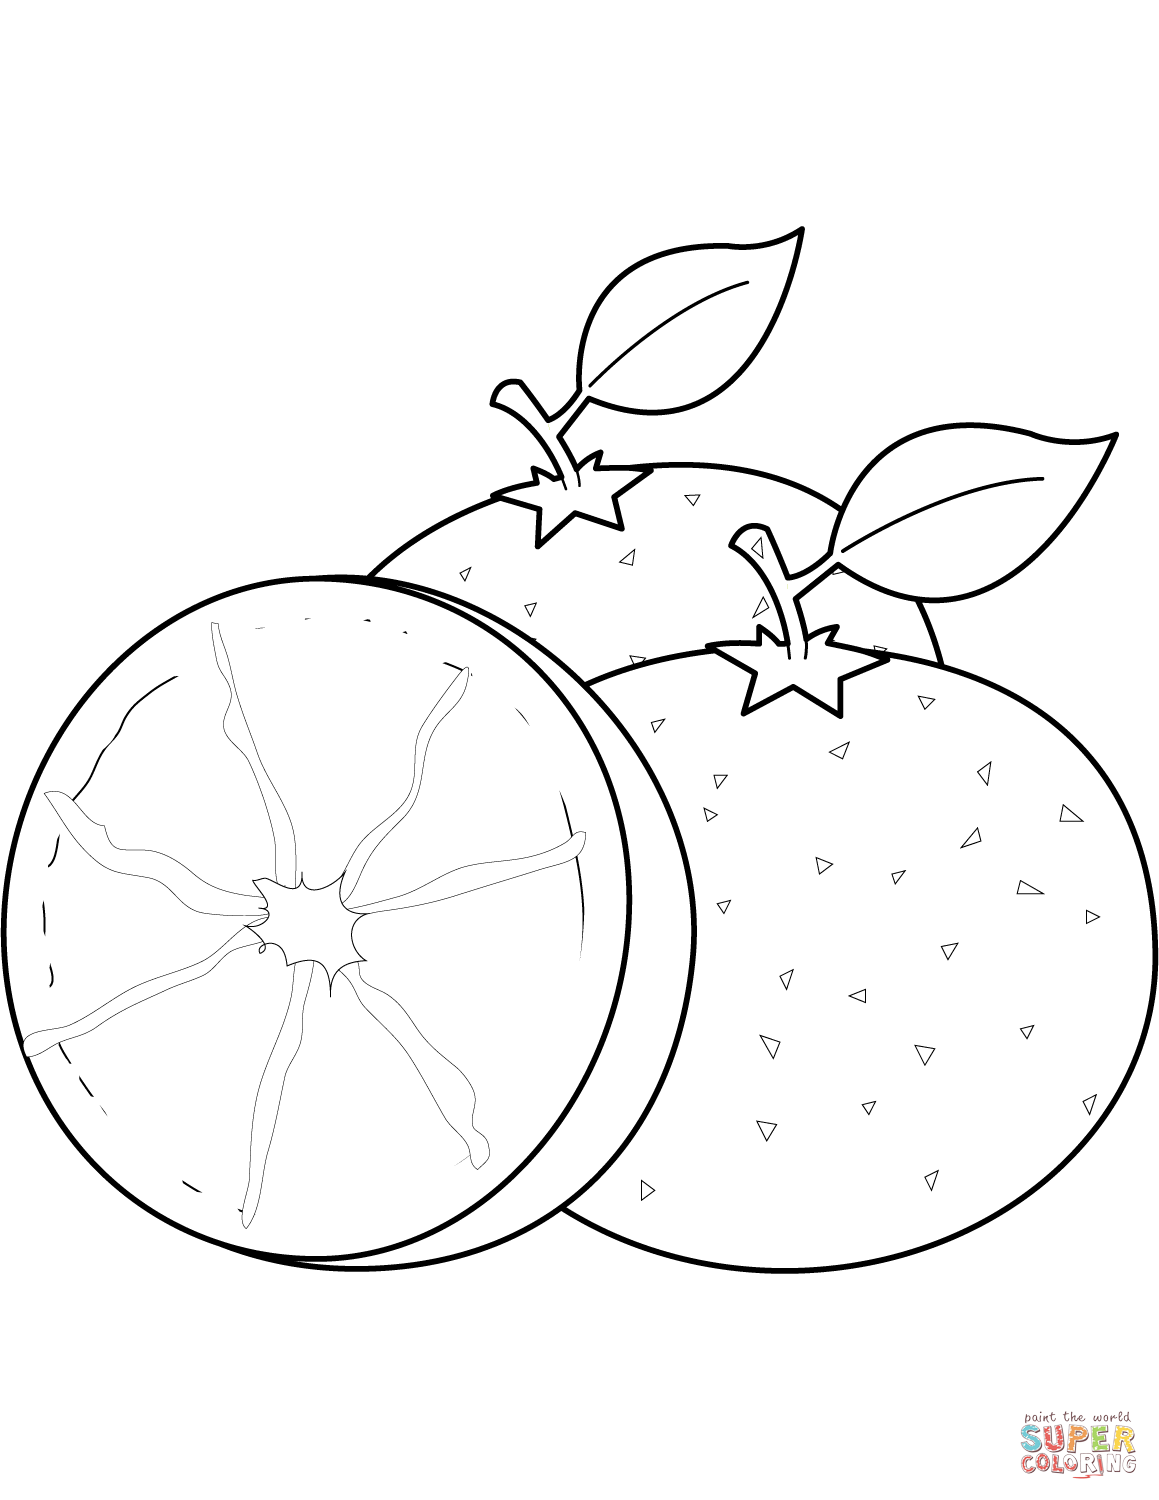 Oranges Drawing At Getdrawings